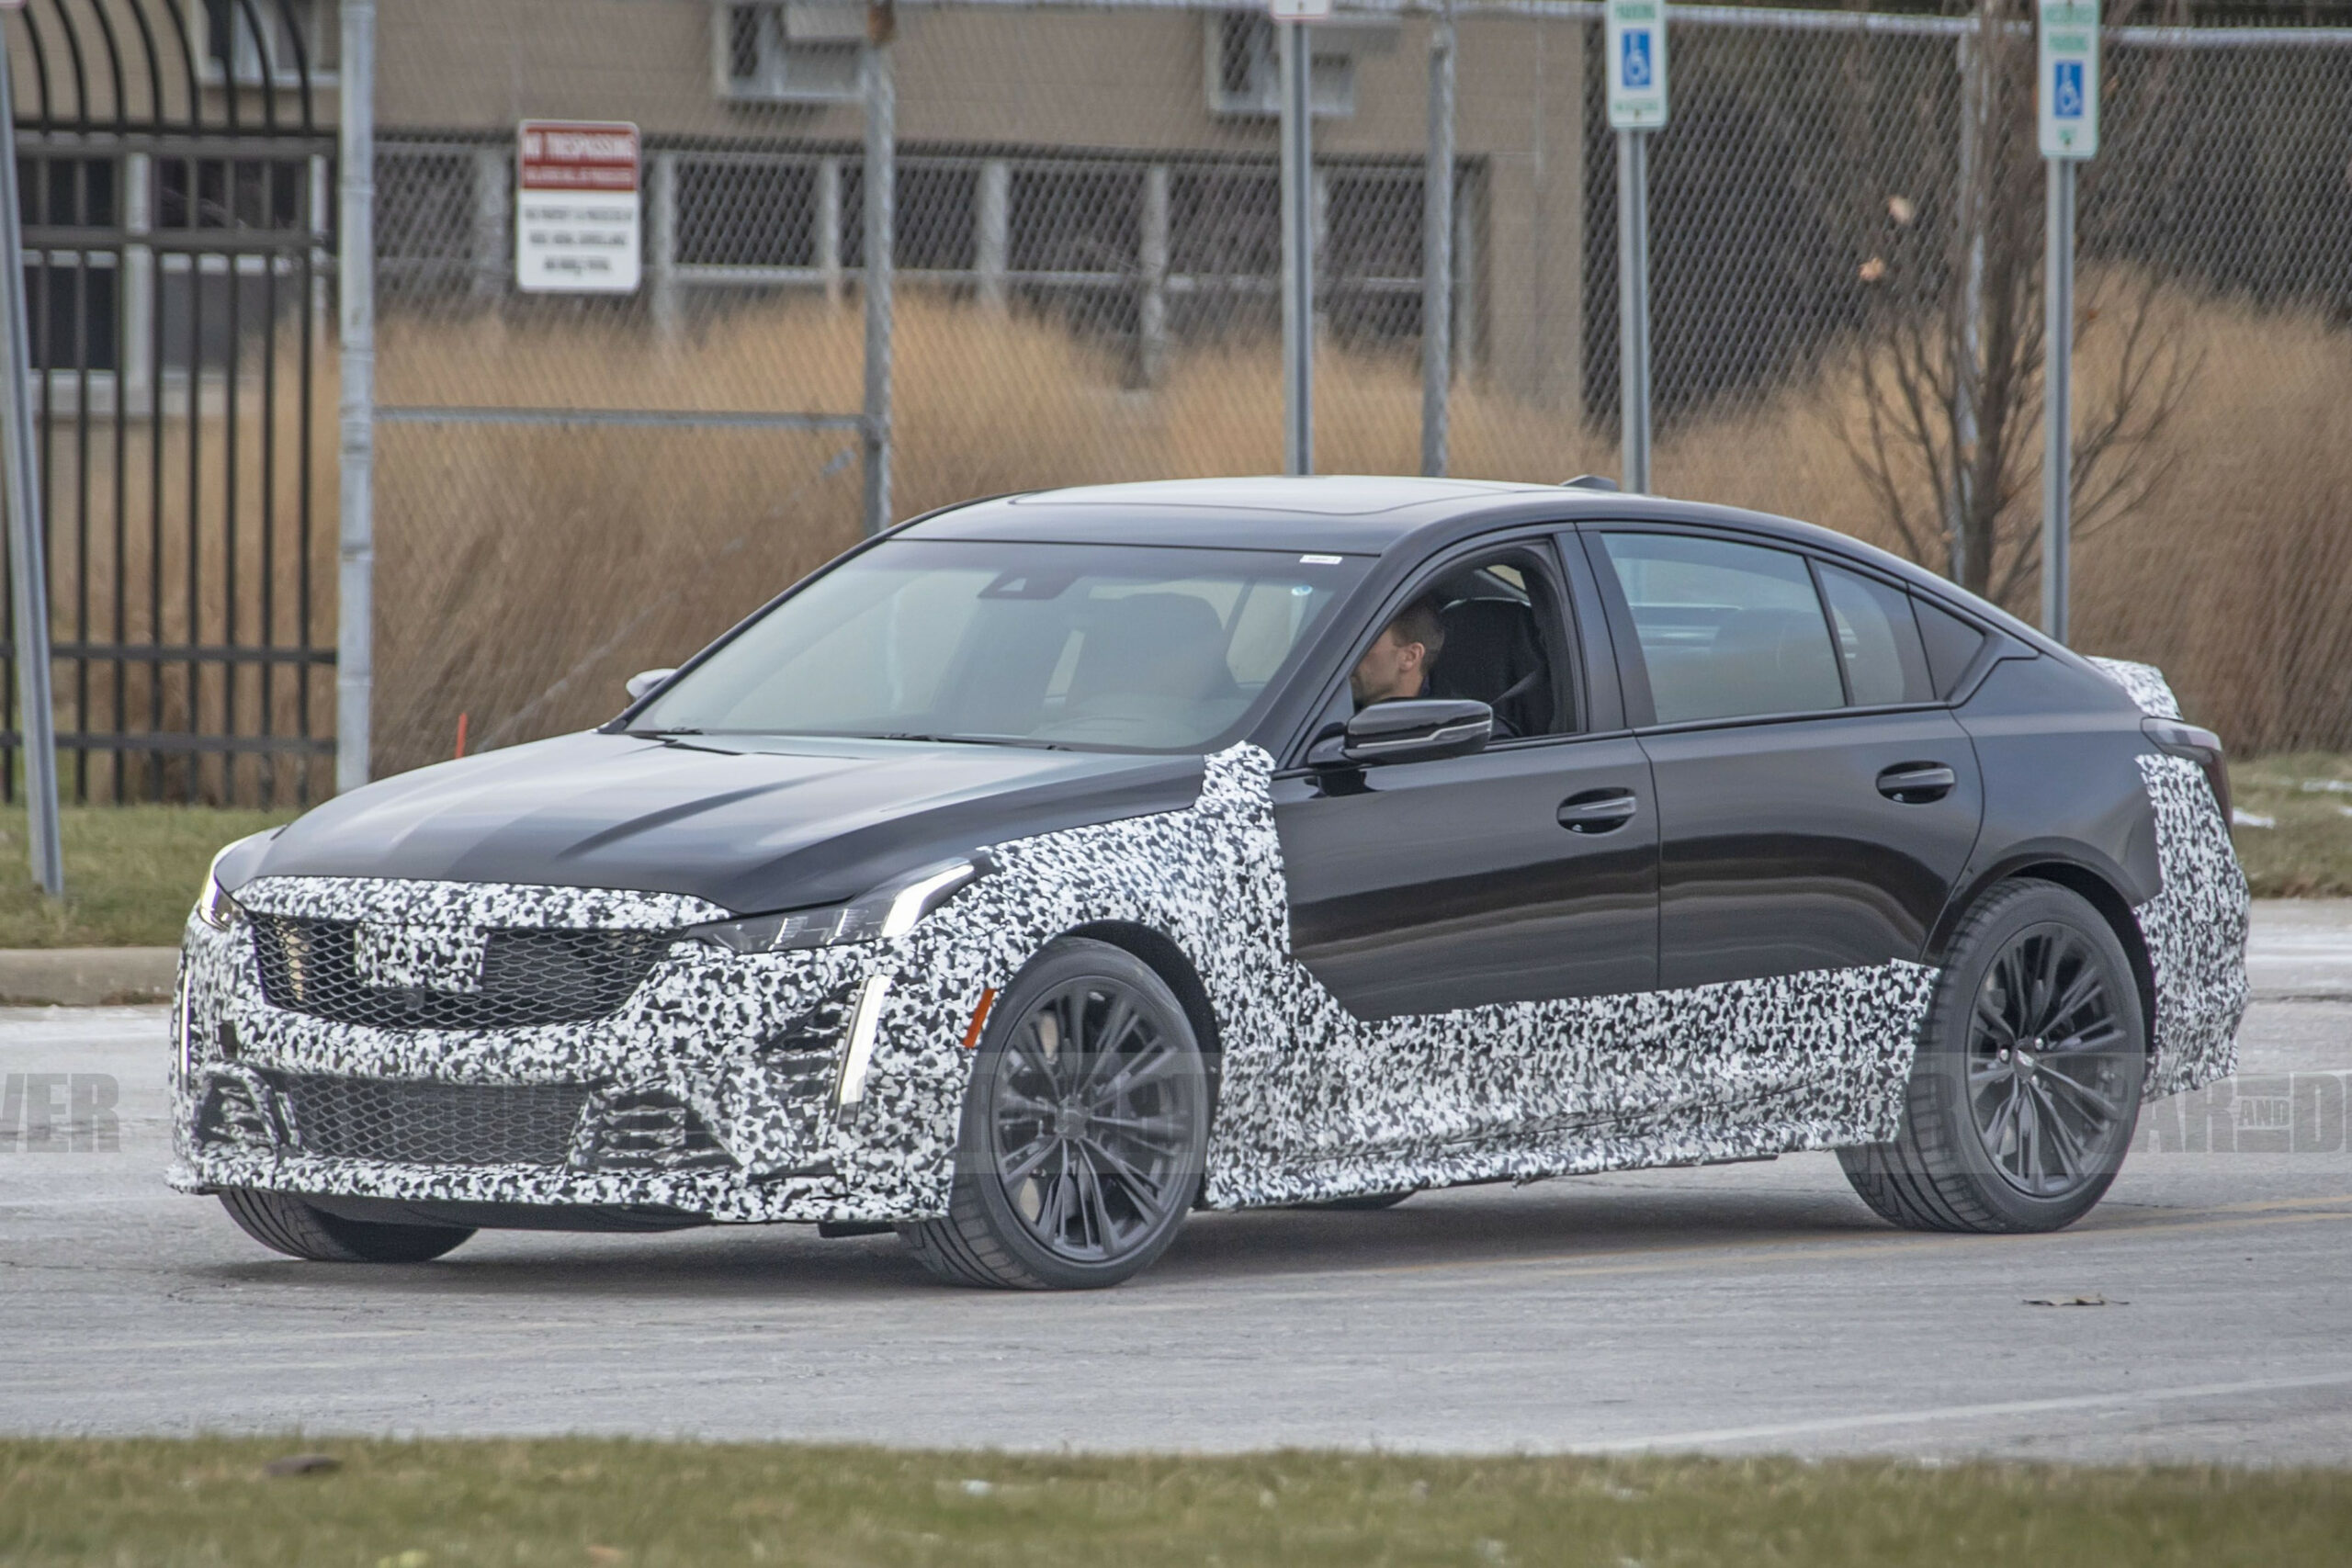 Redesign and Concept Cadillac V Series 2022